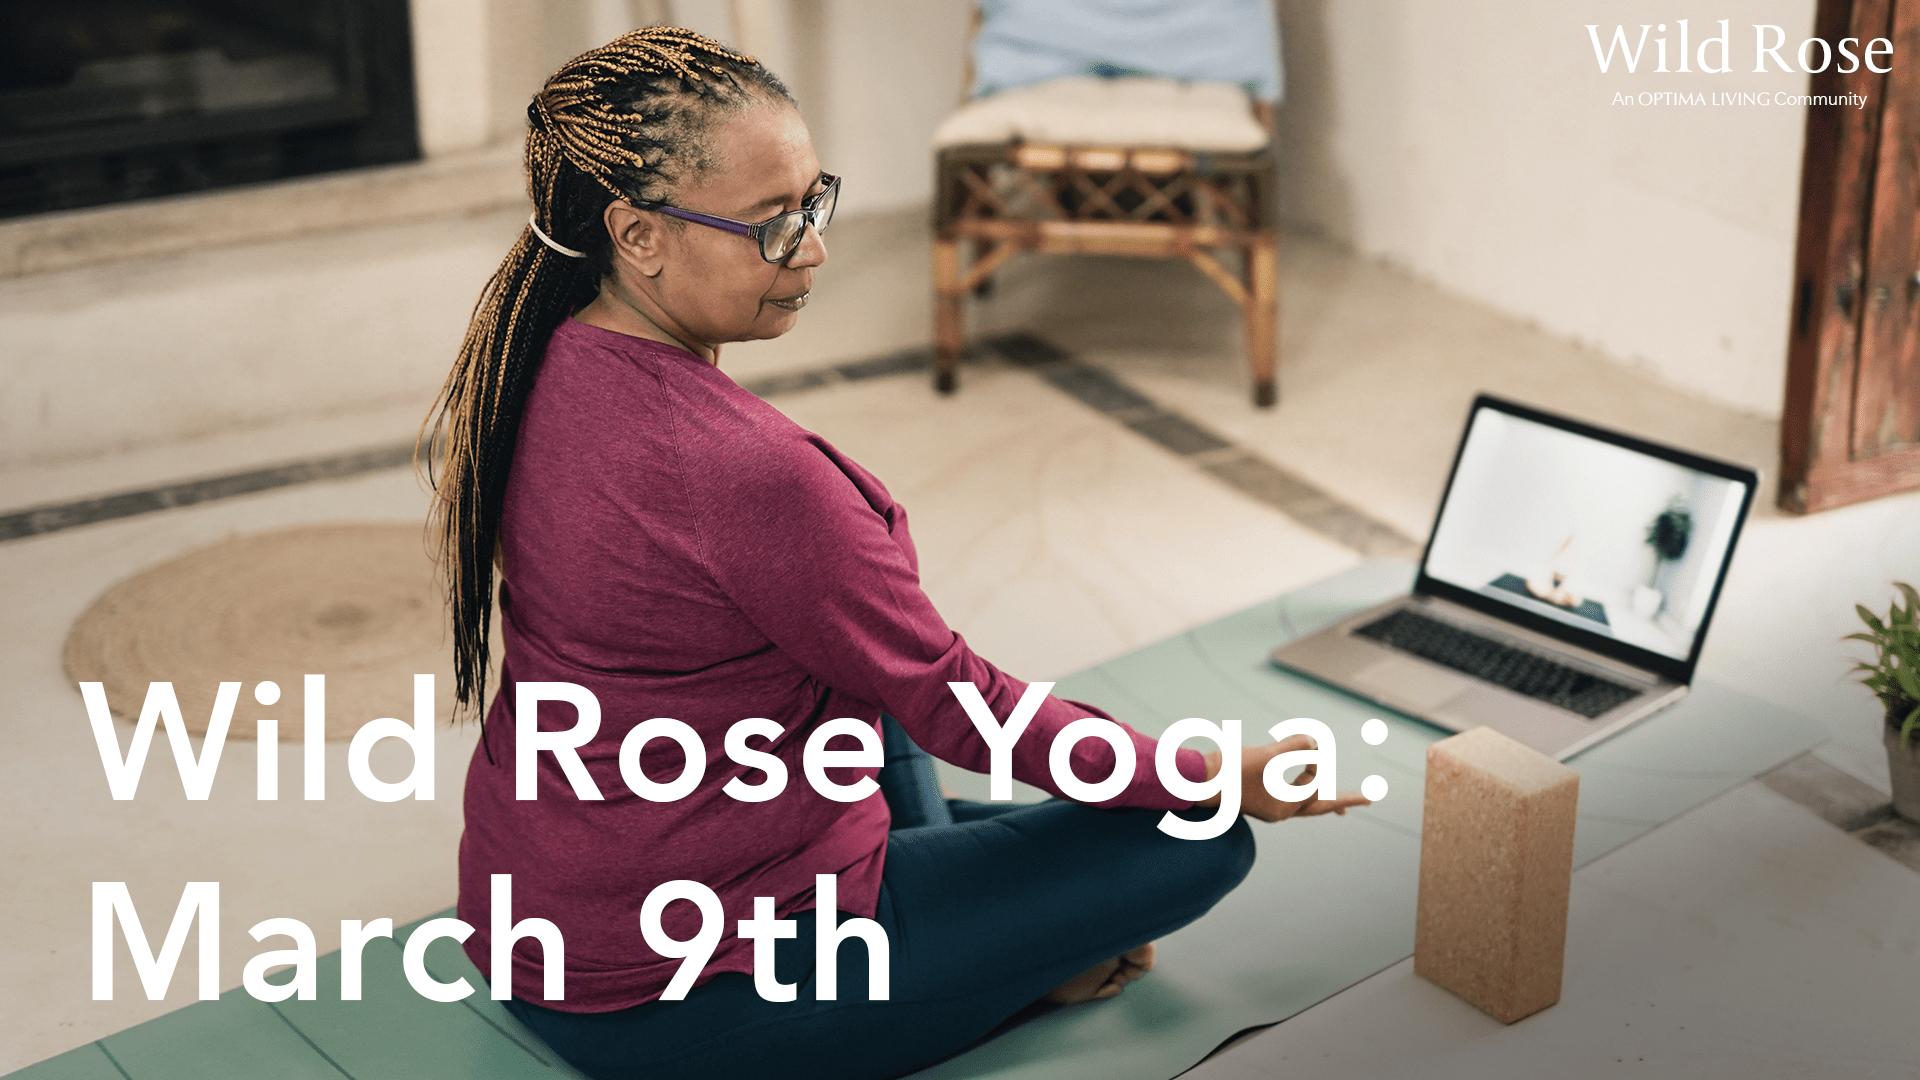 Wild Rose Yoga: March 9th